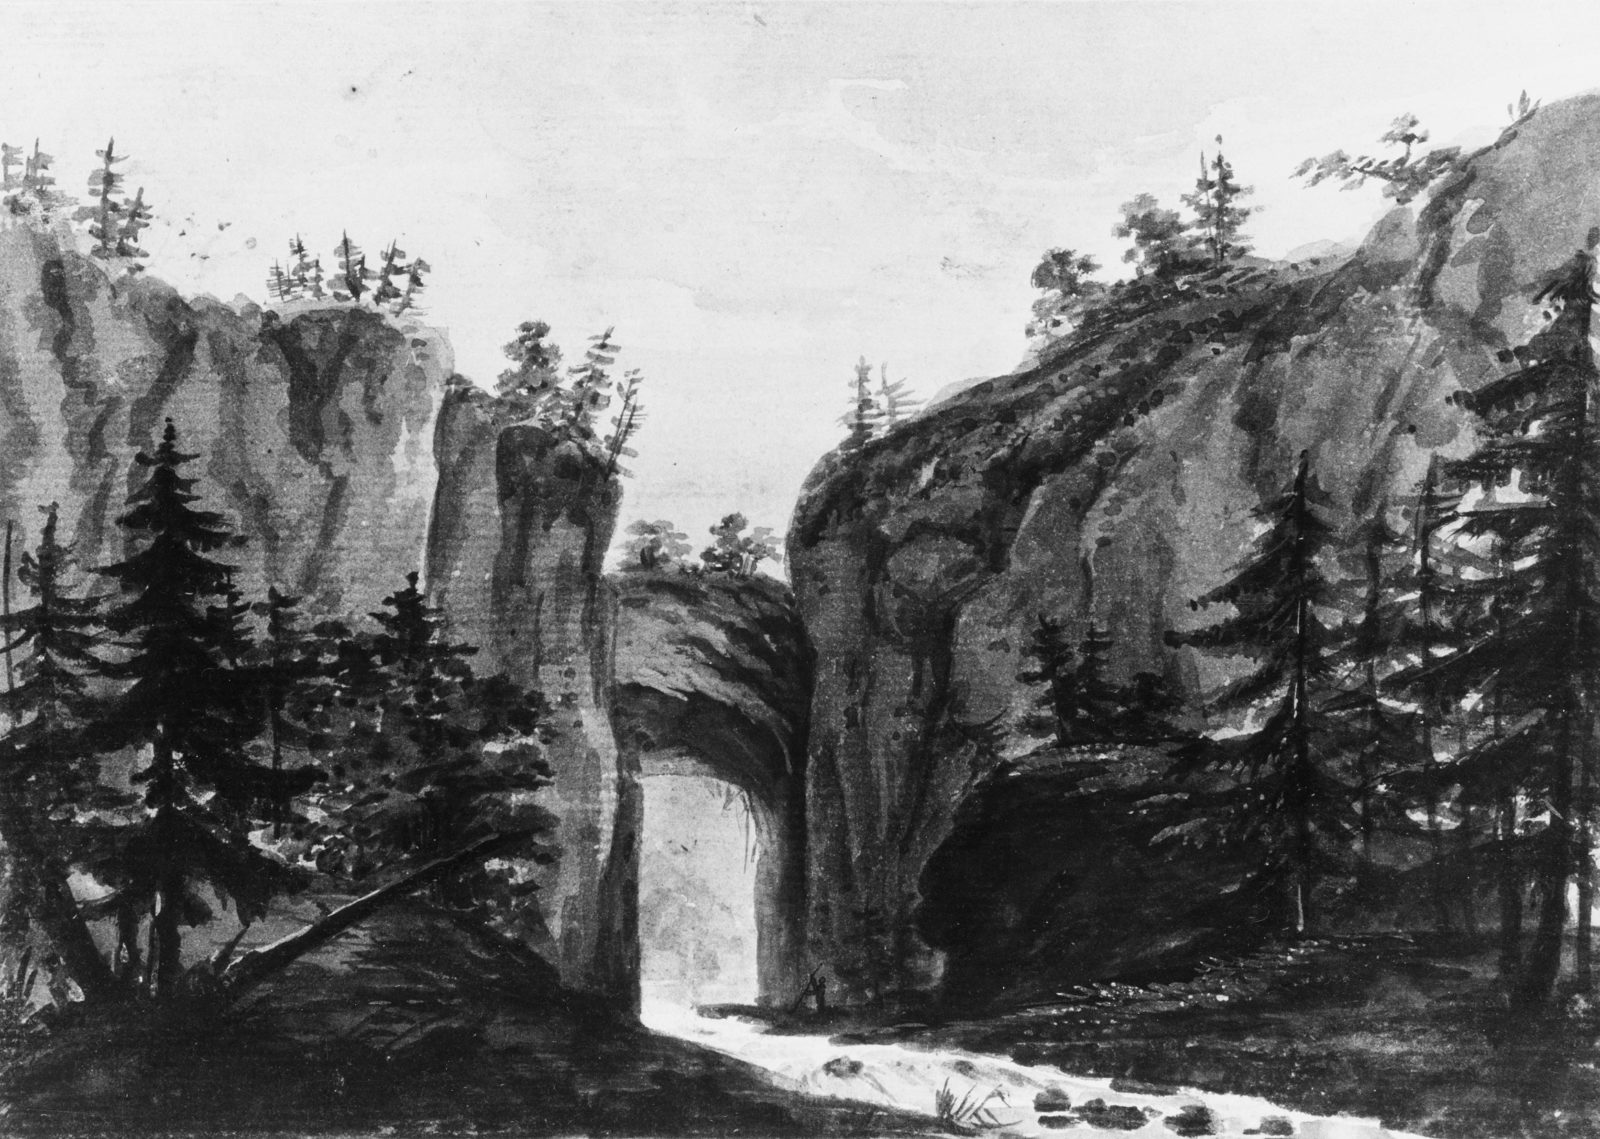 Natural Bridge, Virginia (Copy after an Engraving in François Jean, Marquis de Chastellux, Travels in North America, 1787)